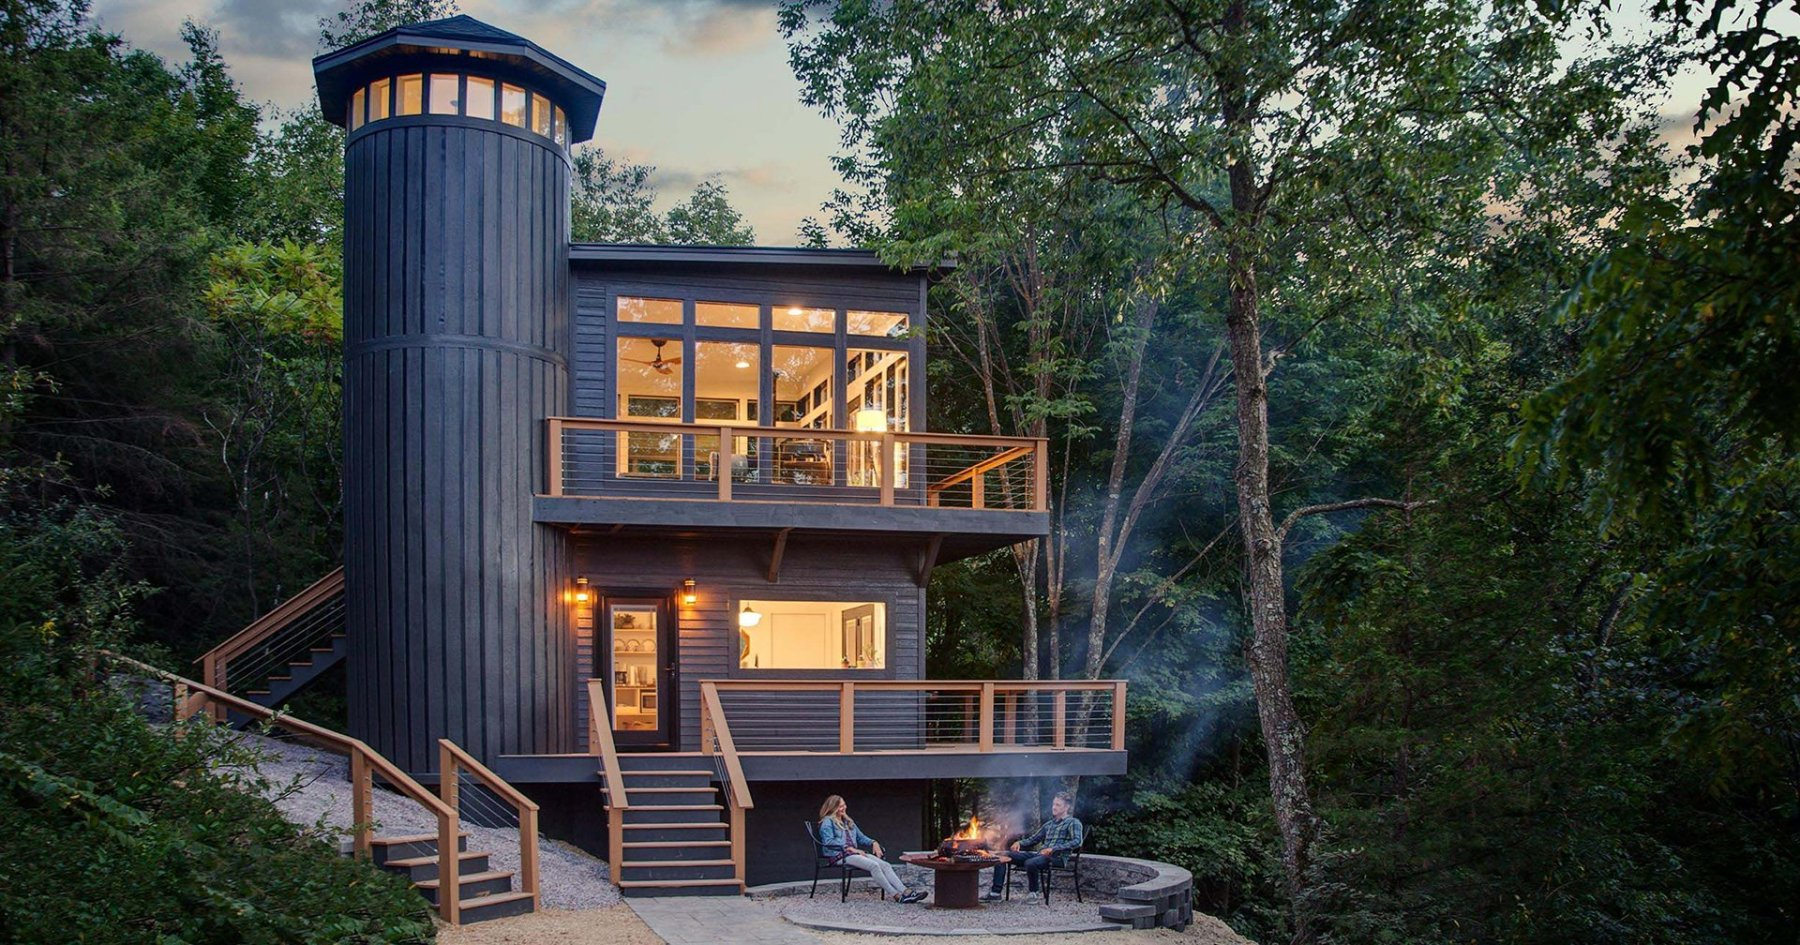 The Castle-Cabin of Your Dreams Is Finally Open for Bookings